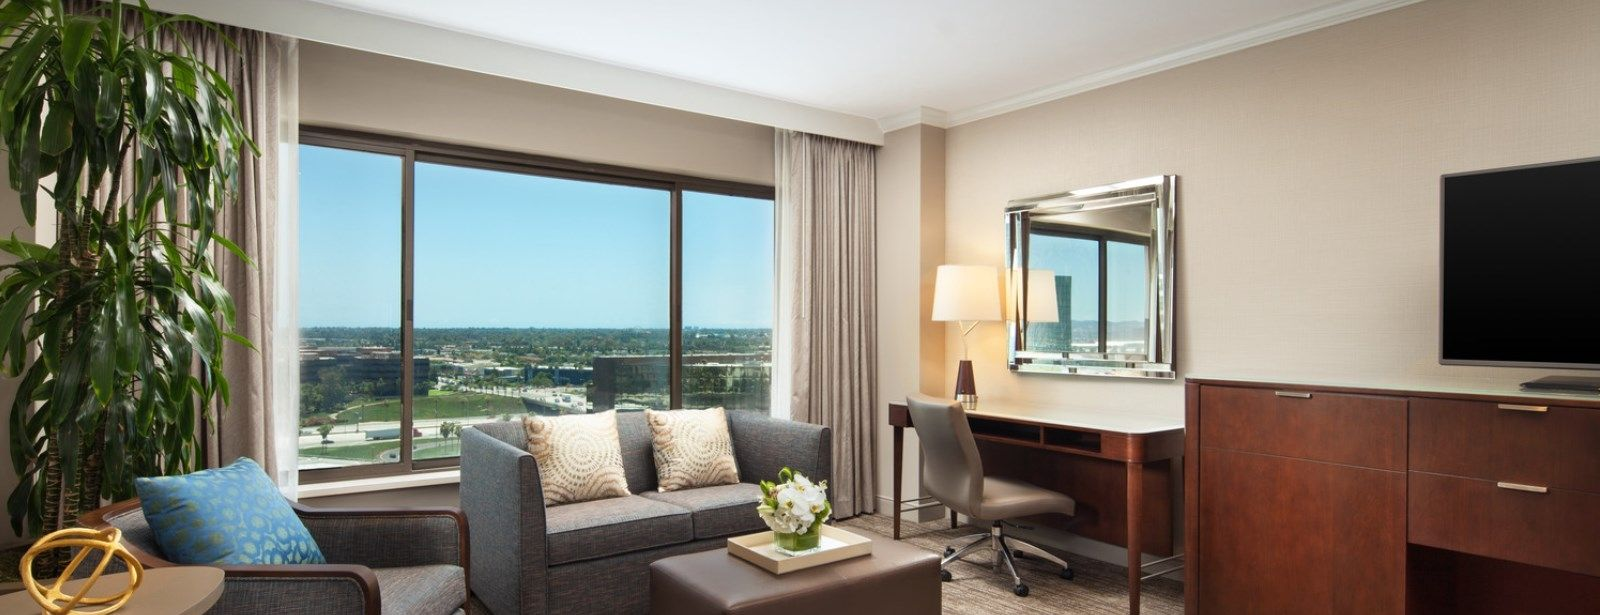 Junior Suites | The Westin South Coast Plaza, Costa Mesa